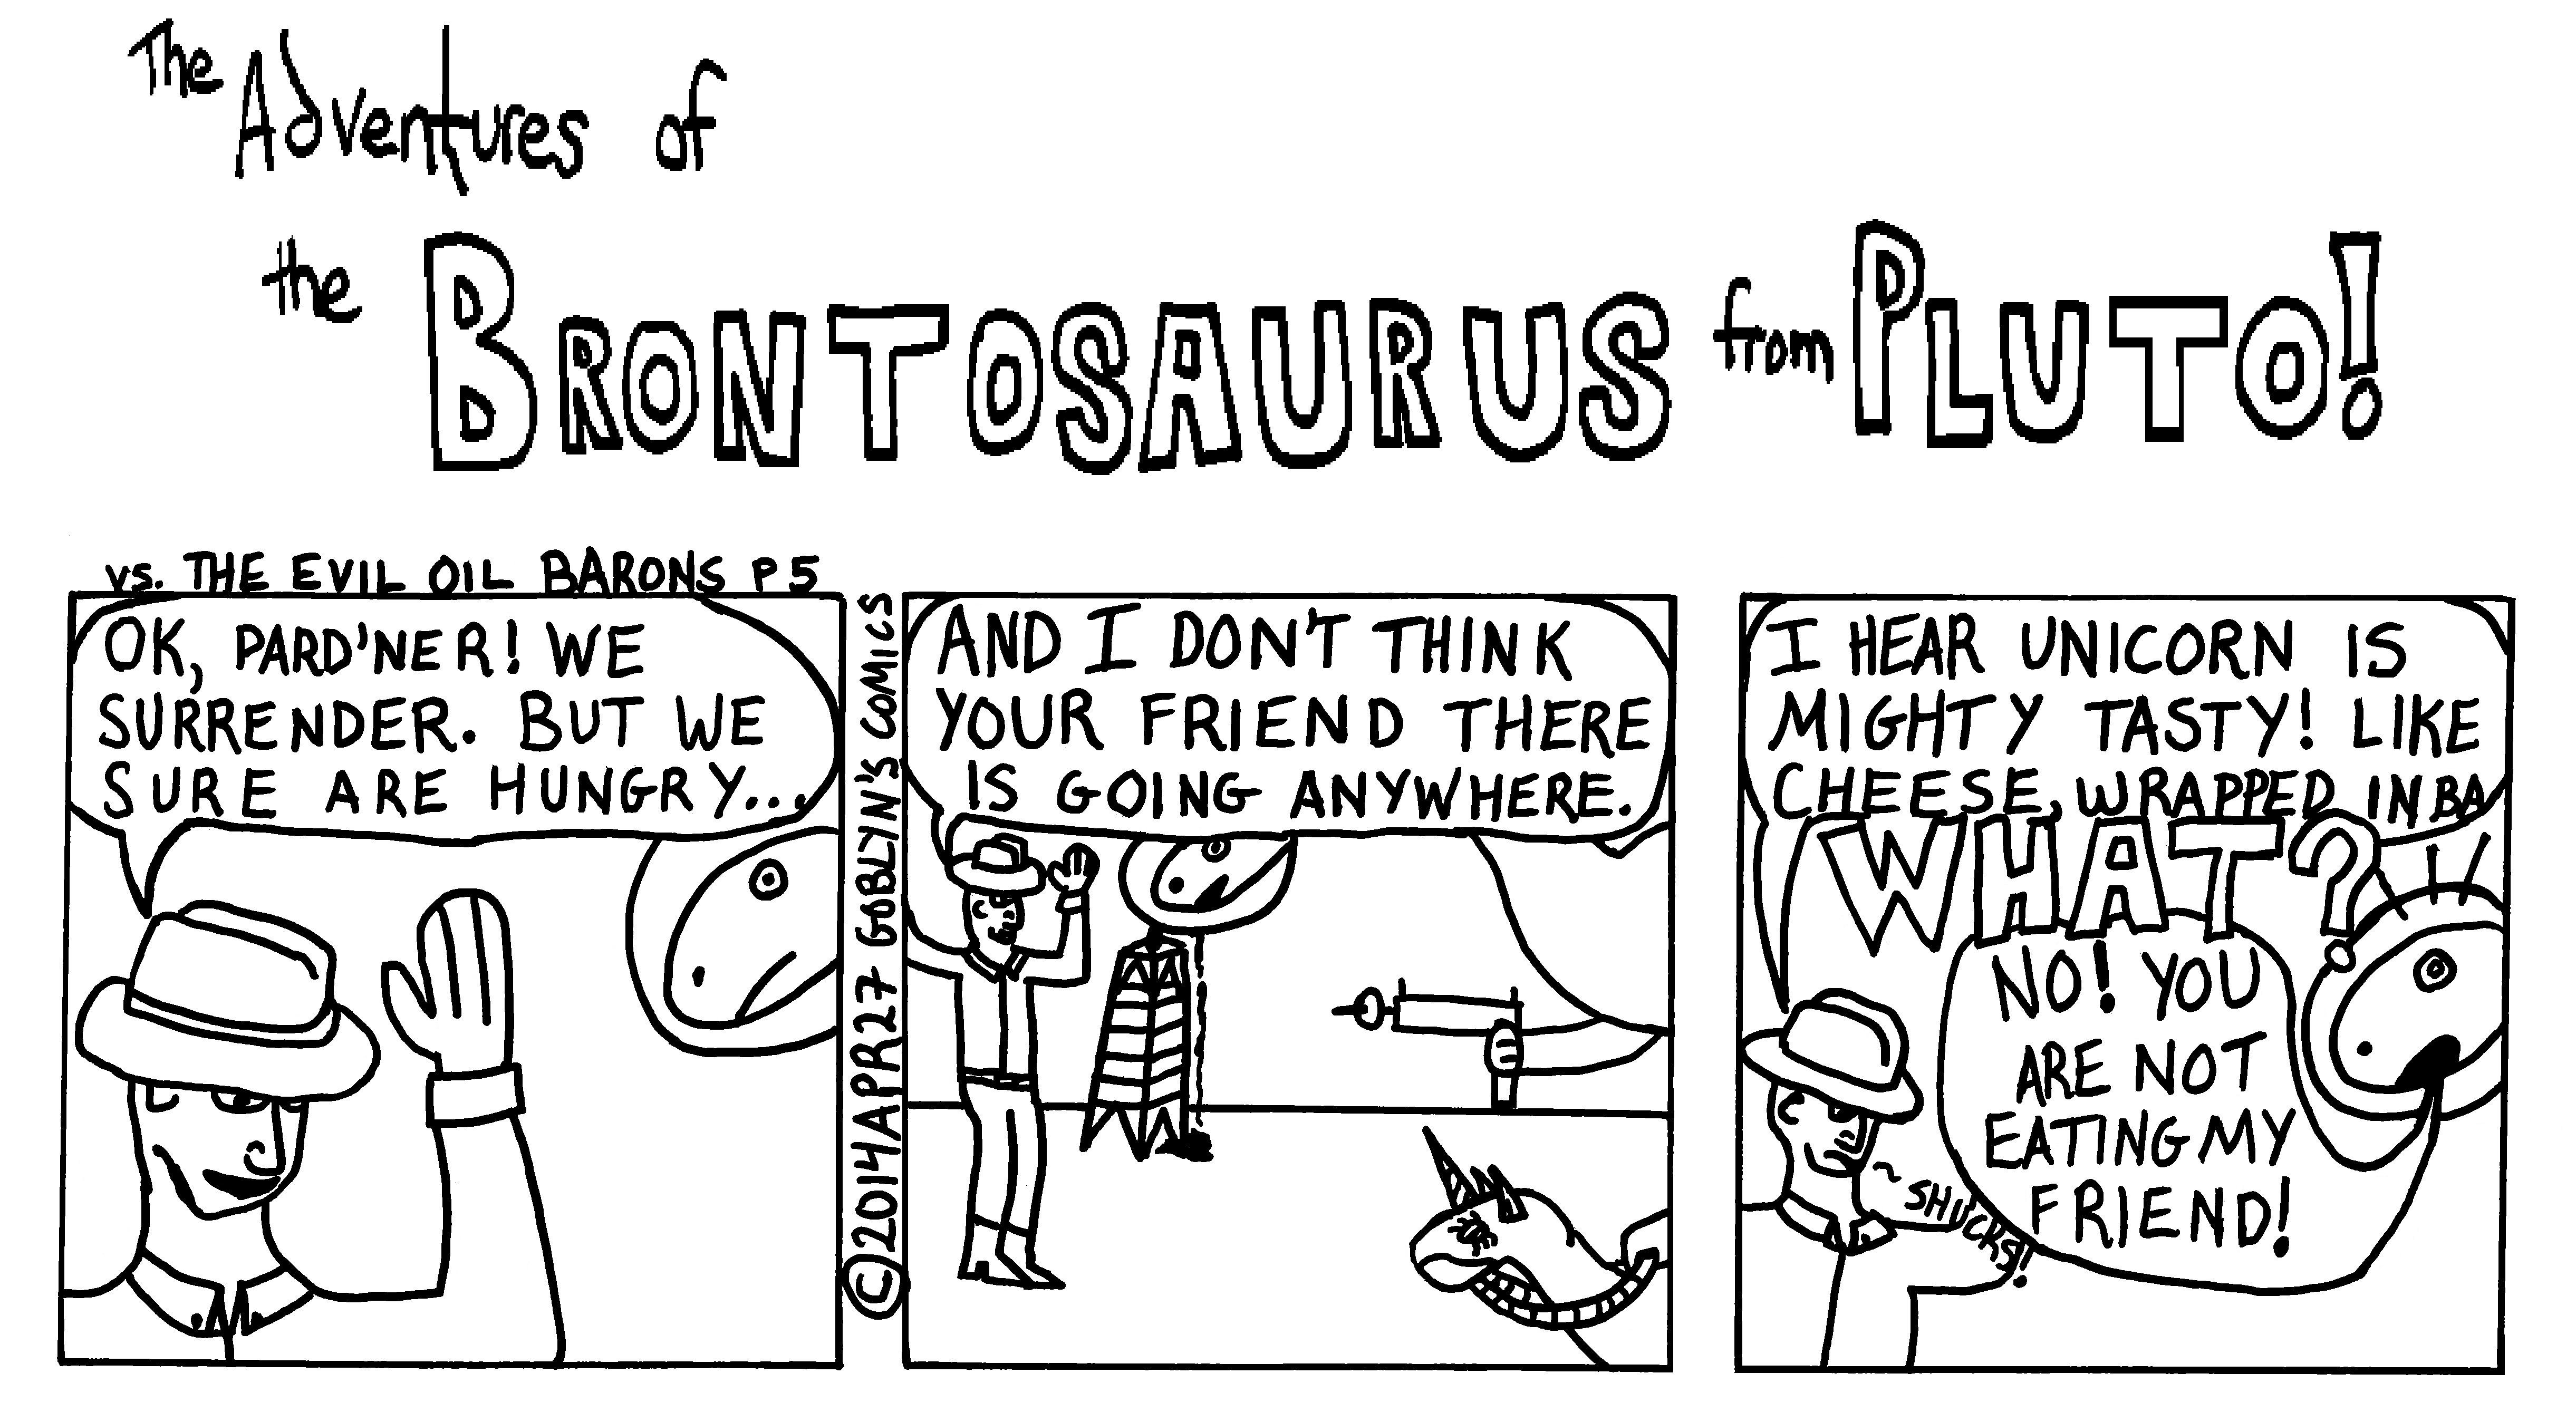 "The Adventures of the Brontosaurus from Pluto! vs the Evil Oil Barons Part 5. ""We surrender, but boy, we sure are hungry. How about if we eat the Unicorn from Atlantis? I hear that unicorn meat tastes like cheese, wrapped in bacon, with a hint of apricot jam..."""